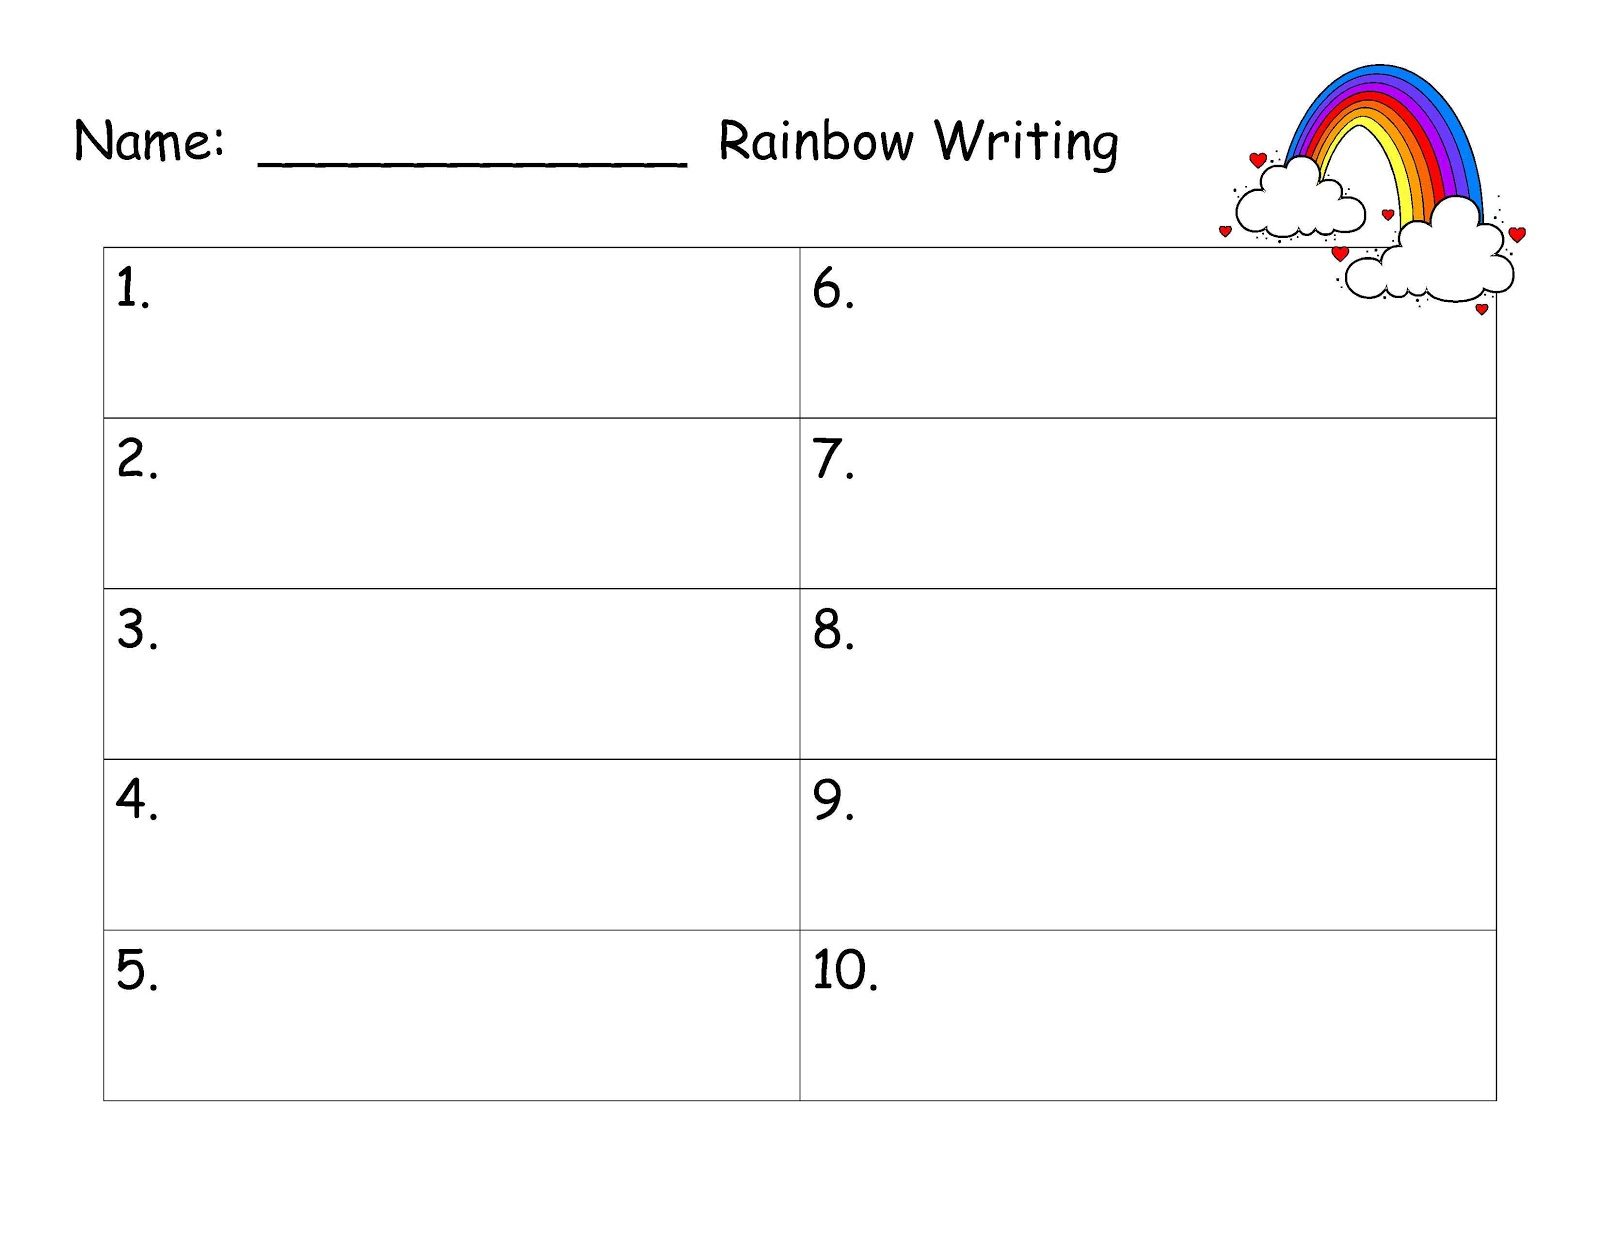 rainbow writing spelling words template 6 best images of printable spelling word paper spelling